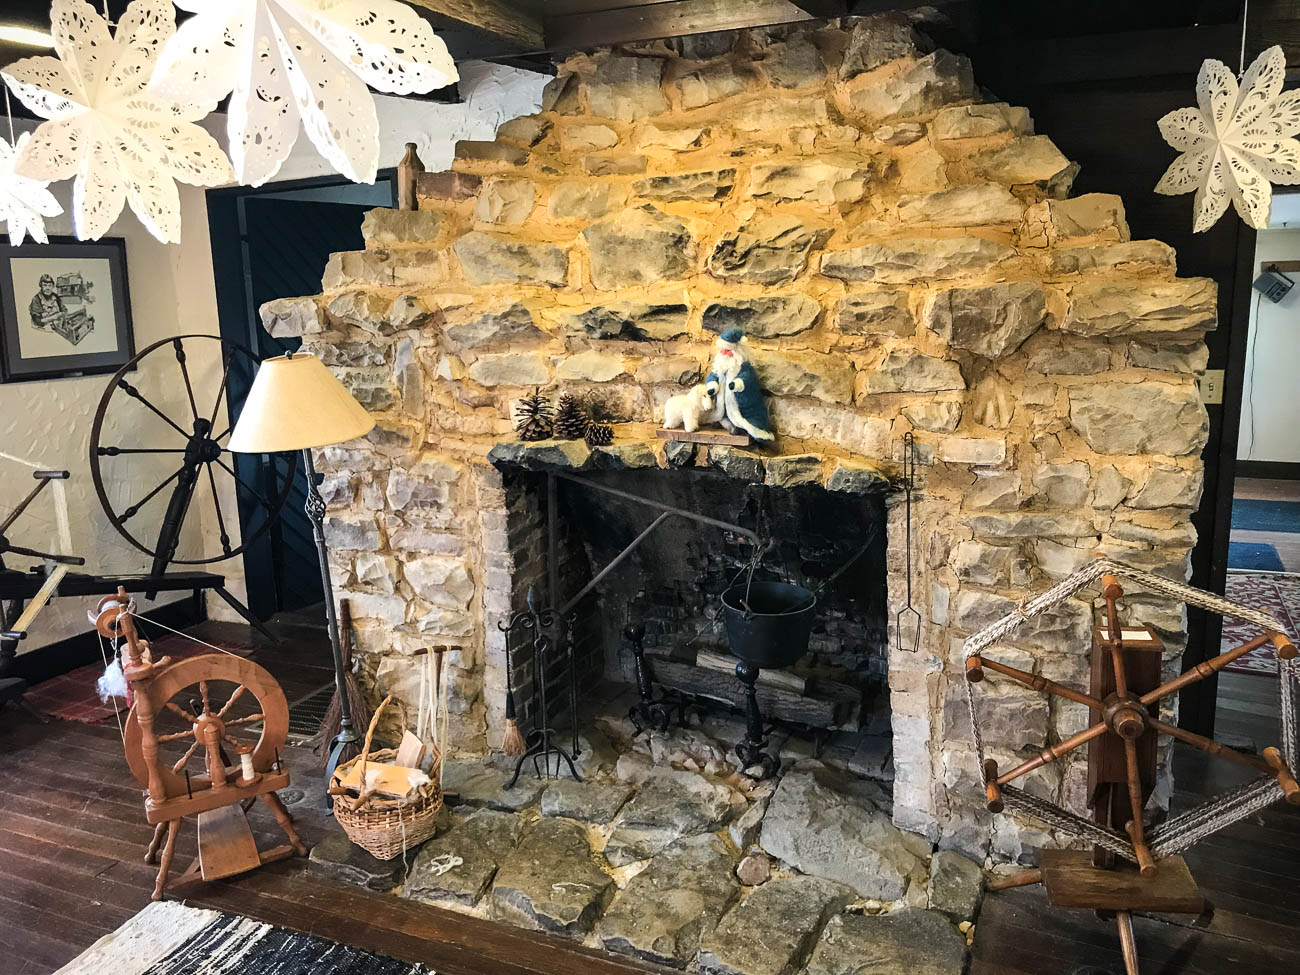 The original cabin on the site was built by Beoni Figg in the 1860s and served as his office for his rock quarry business. The enormous fire place in the middle of the cabin showcases the rocks that were extracted during his time there. / Image: Katie Robinson, Cincinnati Refined // Published: 12.15.18